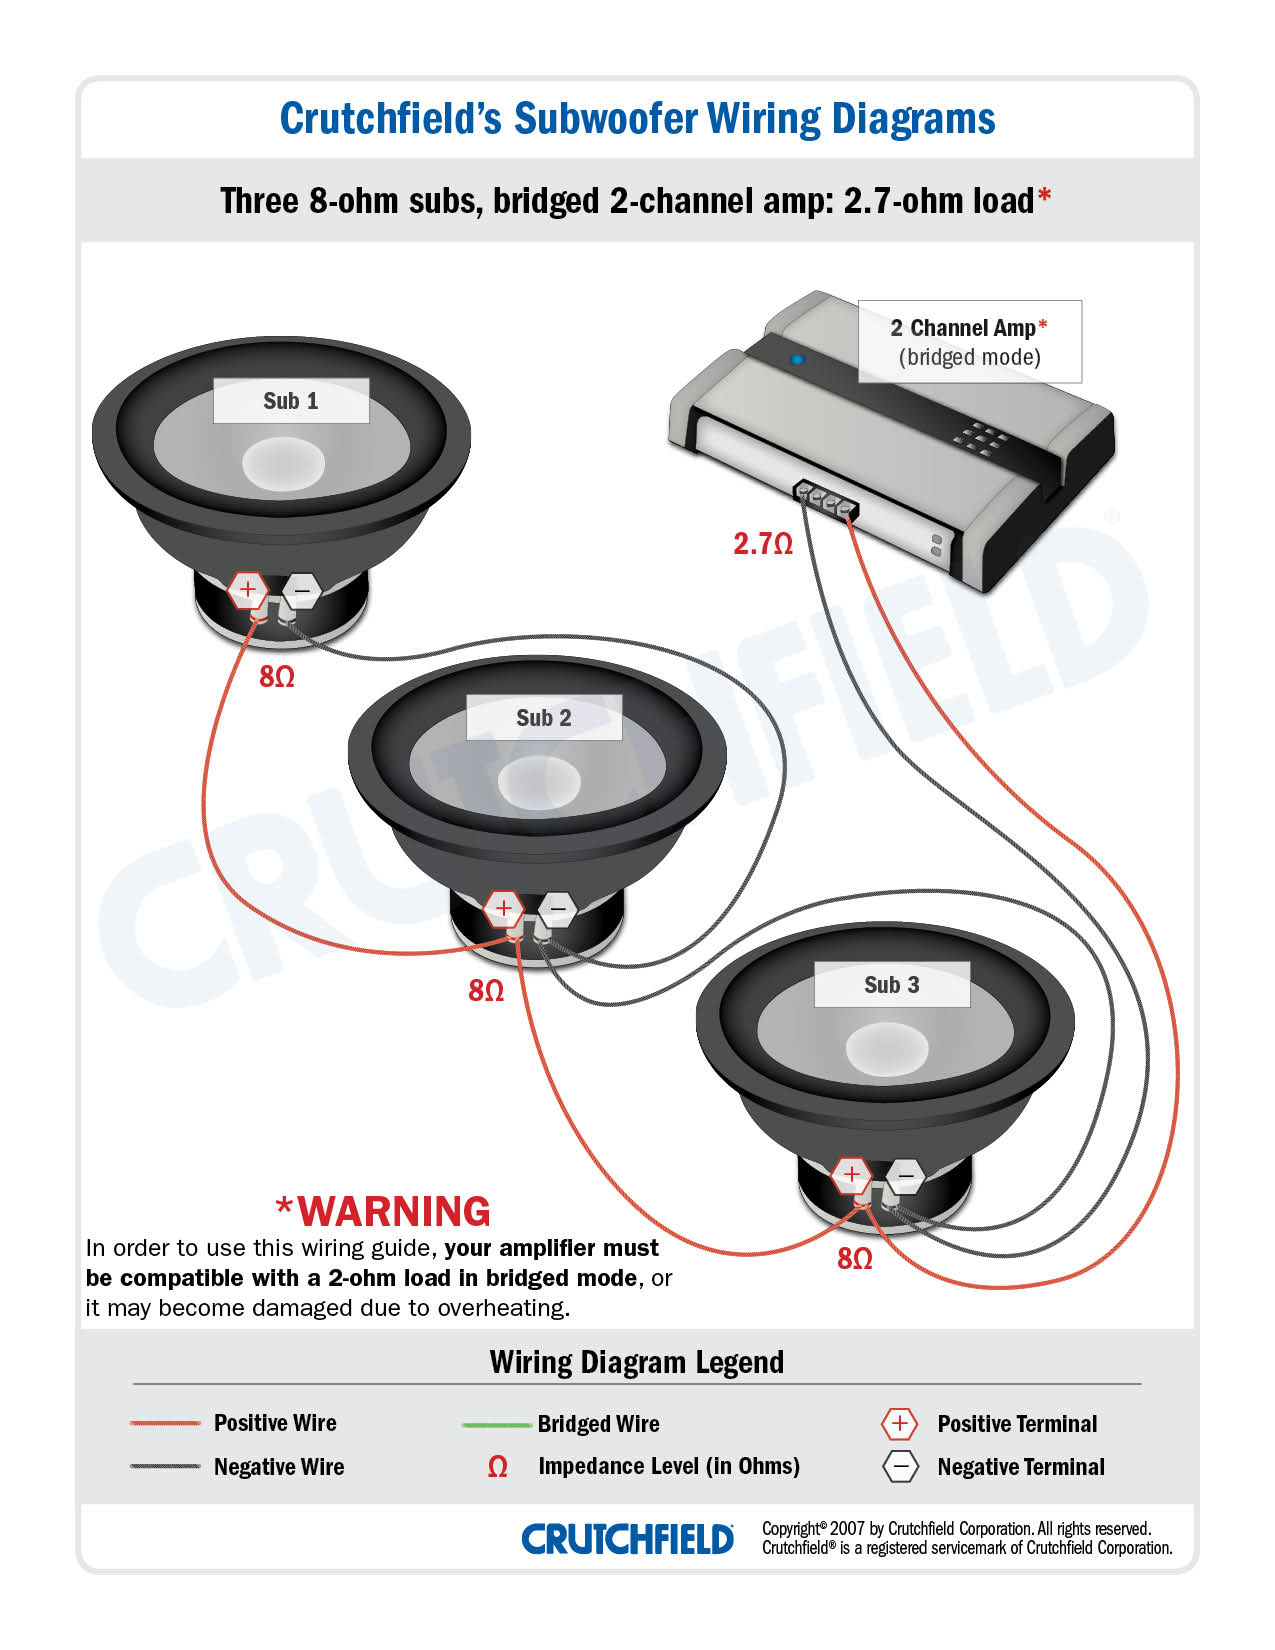 3 SVC 8 ohm 2 ch low imp 3 speaker wiring diagram car audio wiring diagrams \u2022 wiring  at webbmarketing.co